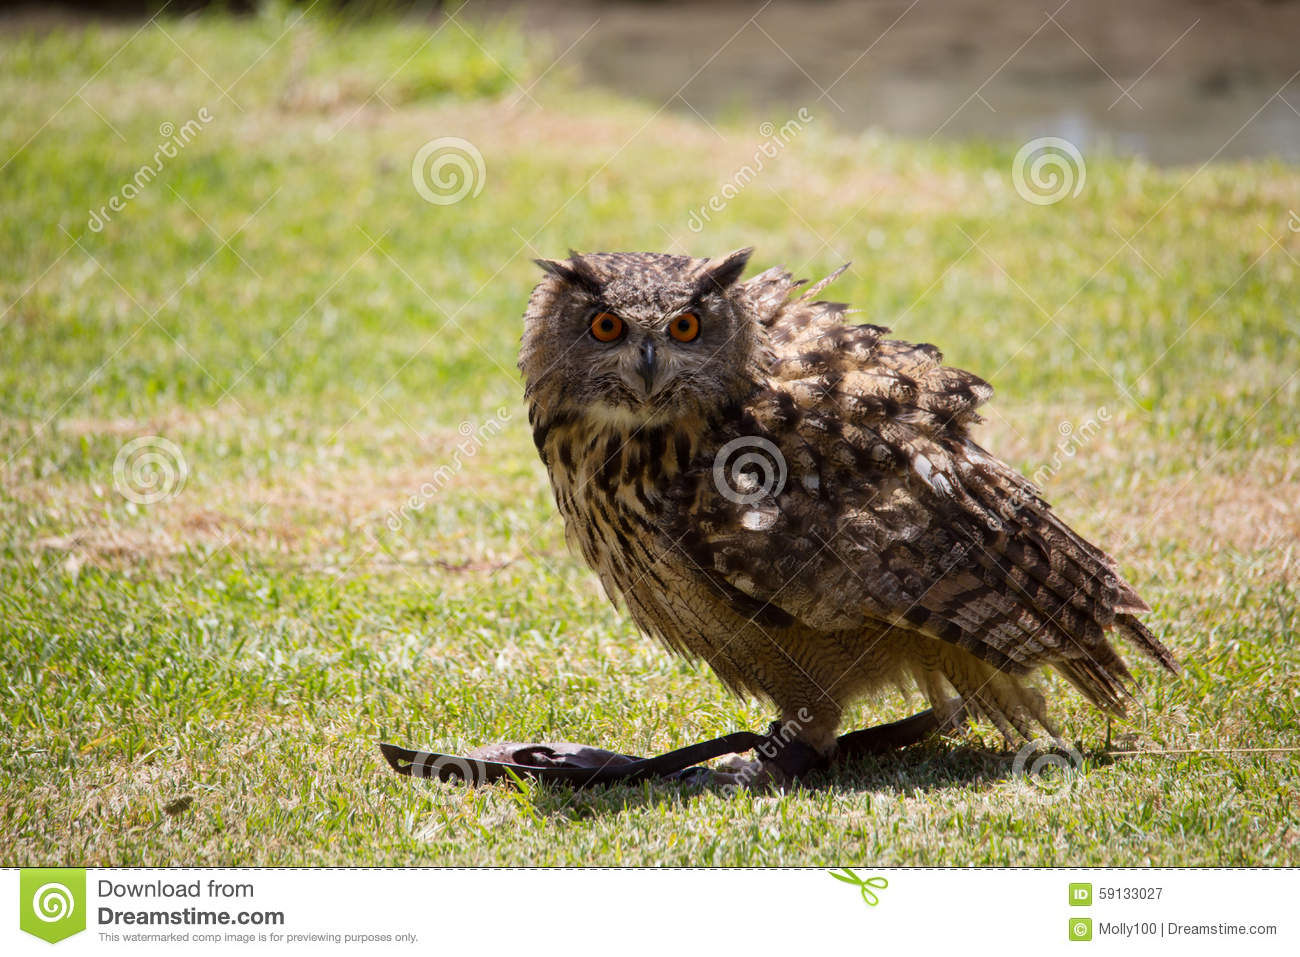 Owl is sitting on the ground, and hunting